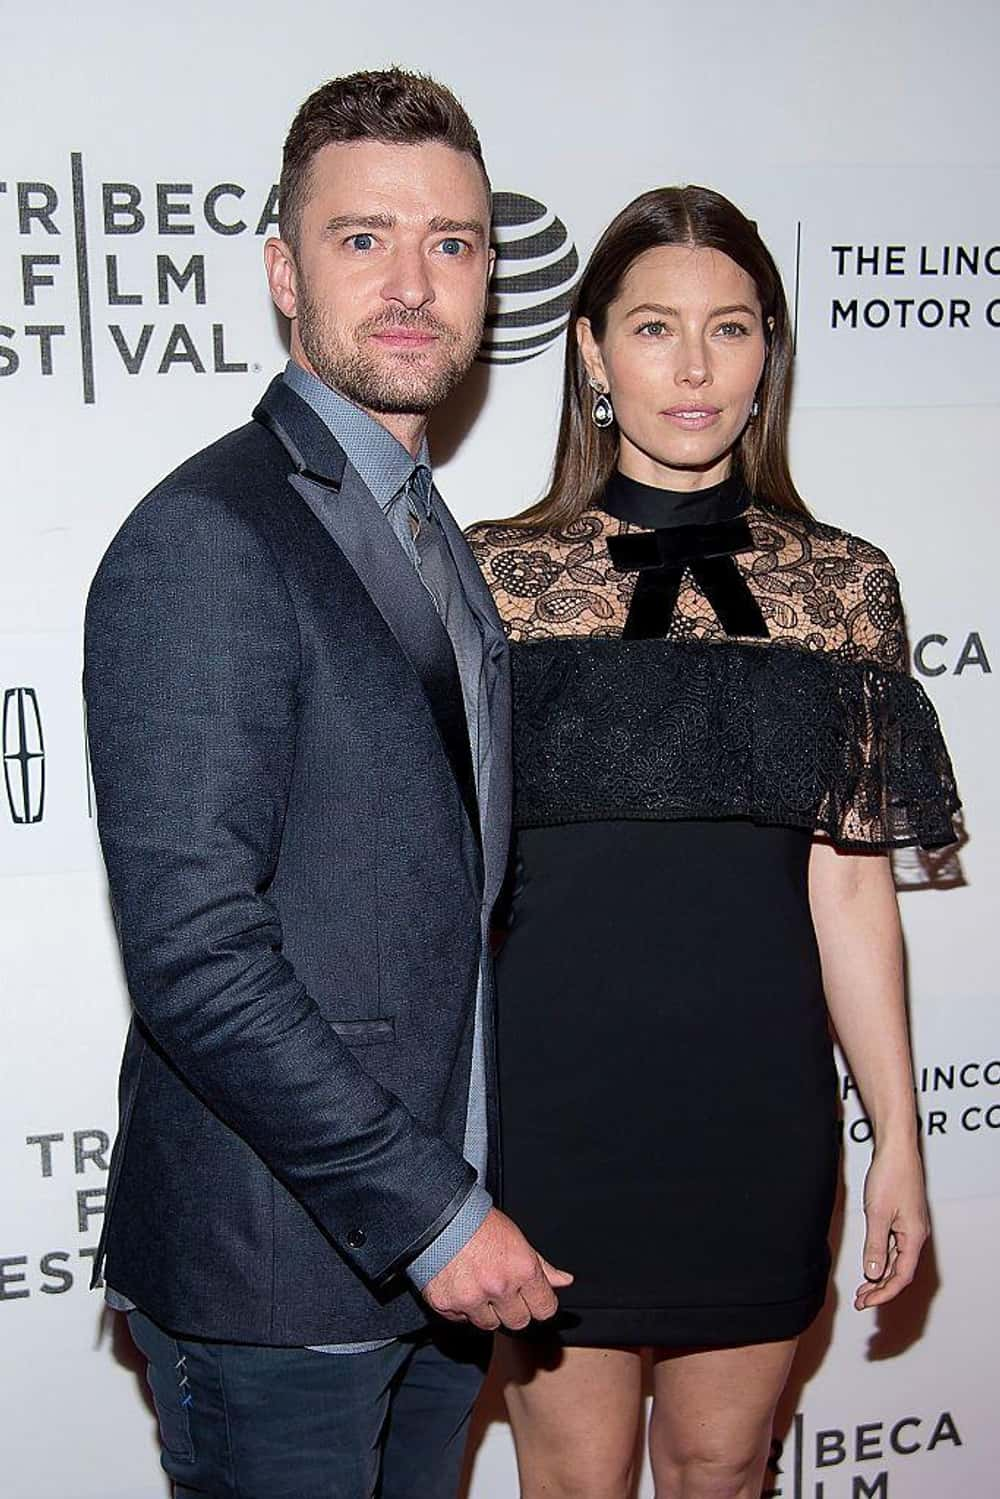 jessica biel dating list Miley cyrus is dating justin gaston justin timberlake is much older than her jessica biel justin is no longer dating jessica biel share to: questionsanswer11.